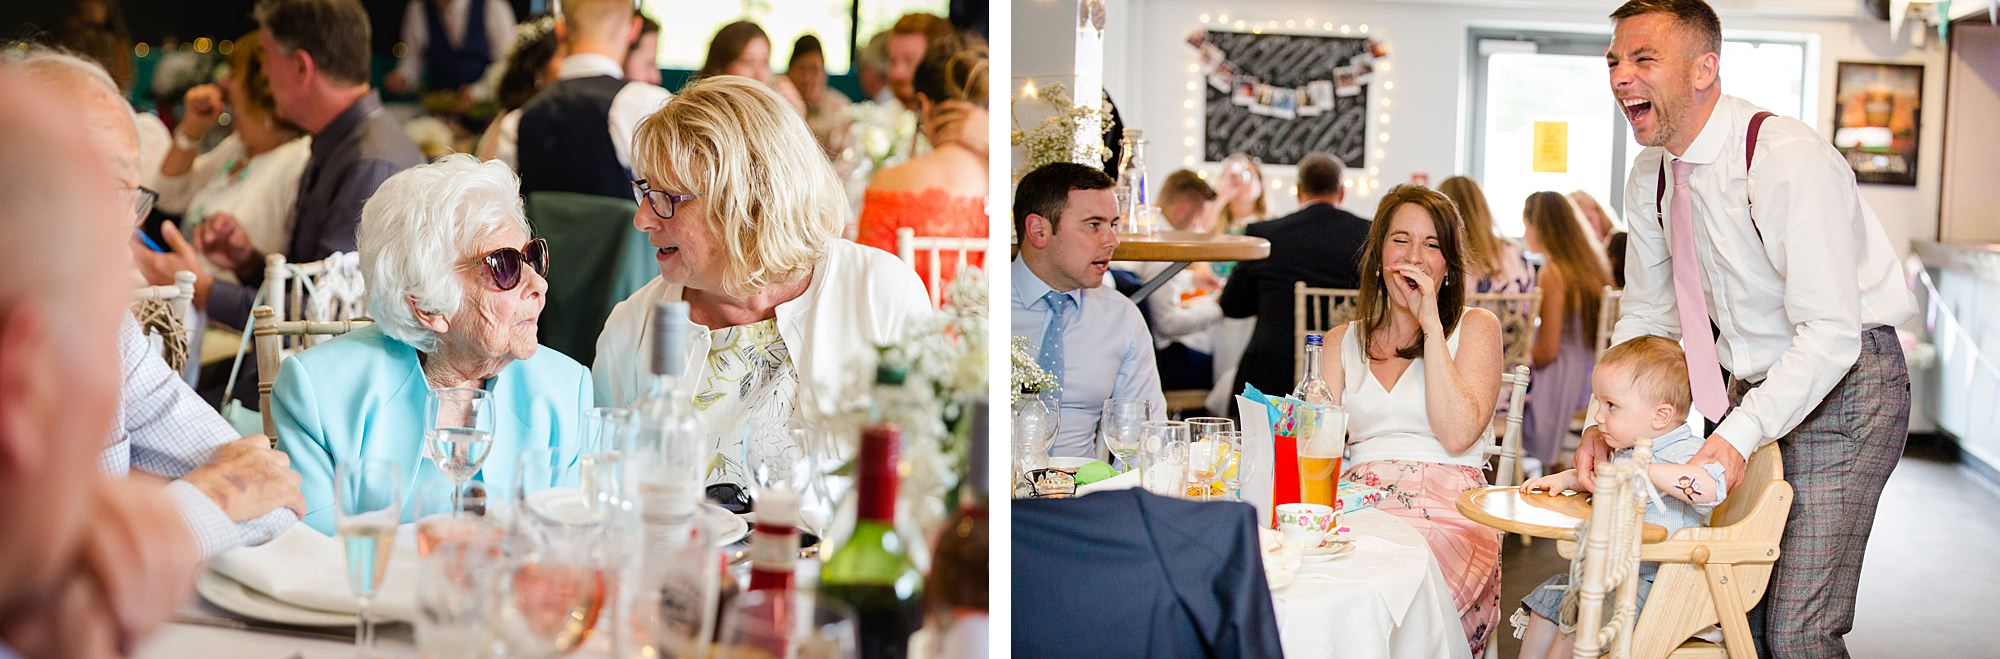 Writtle university college wedding guests enjoying reception